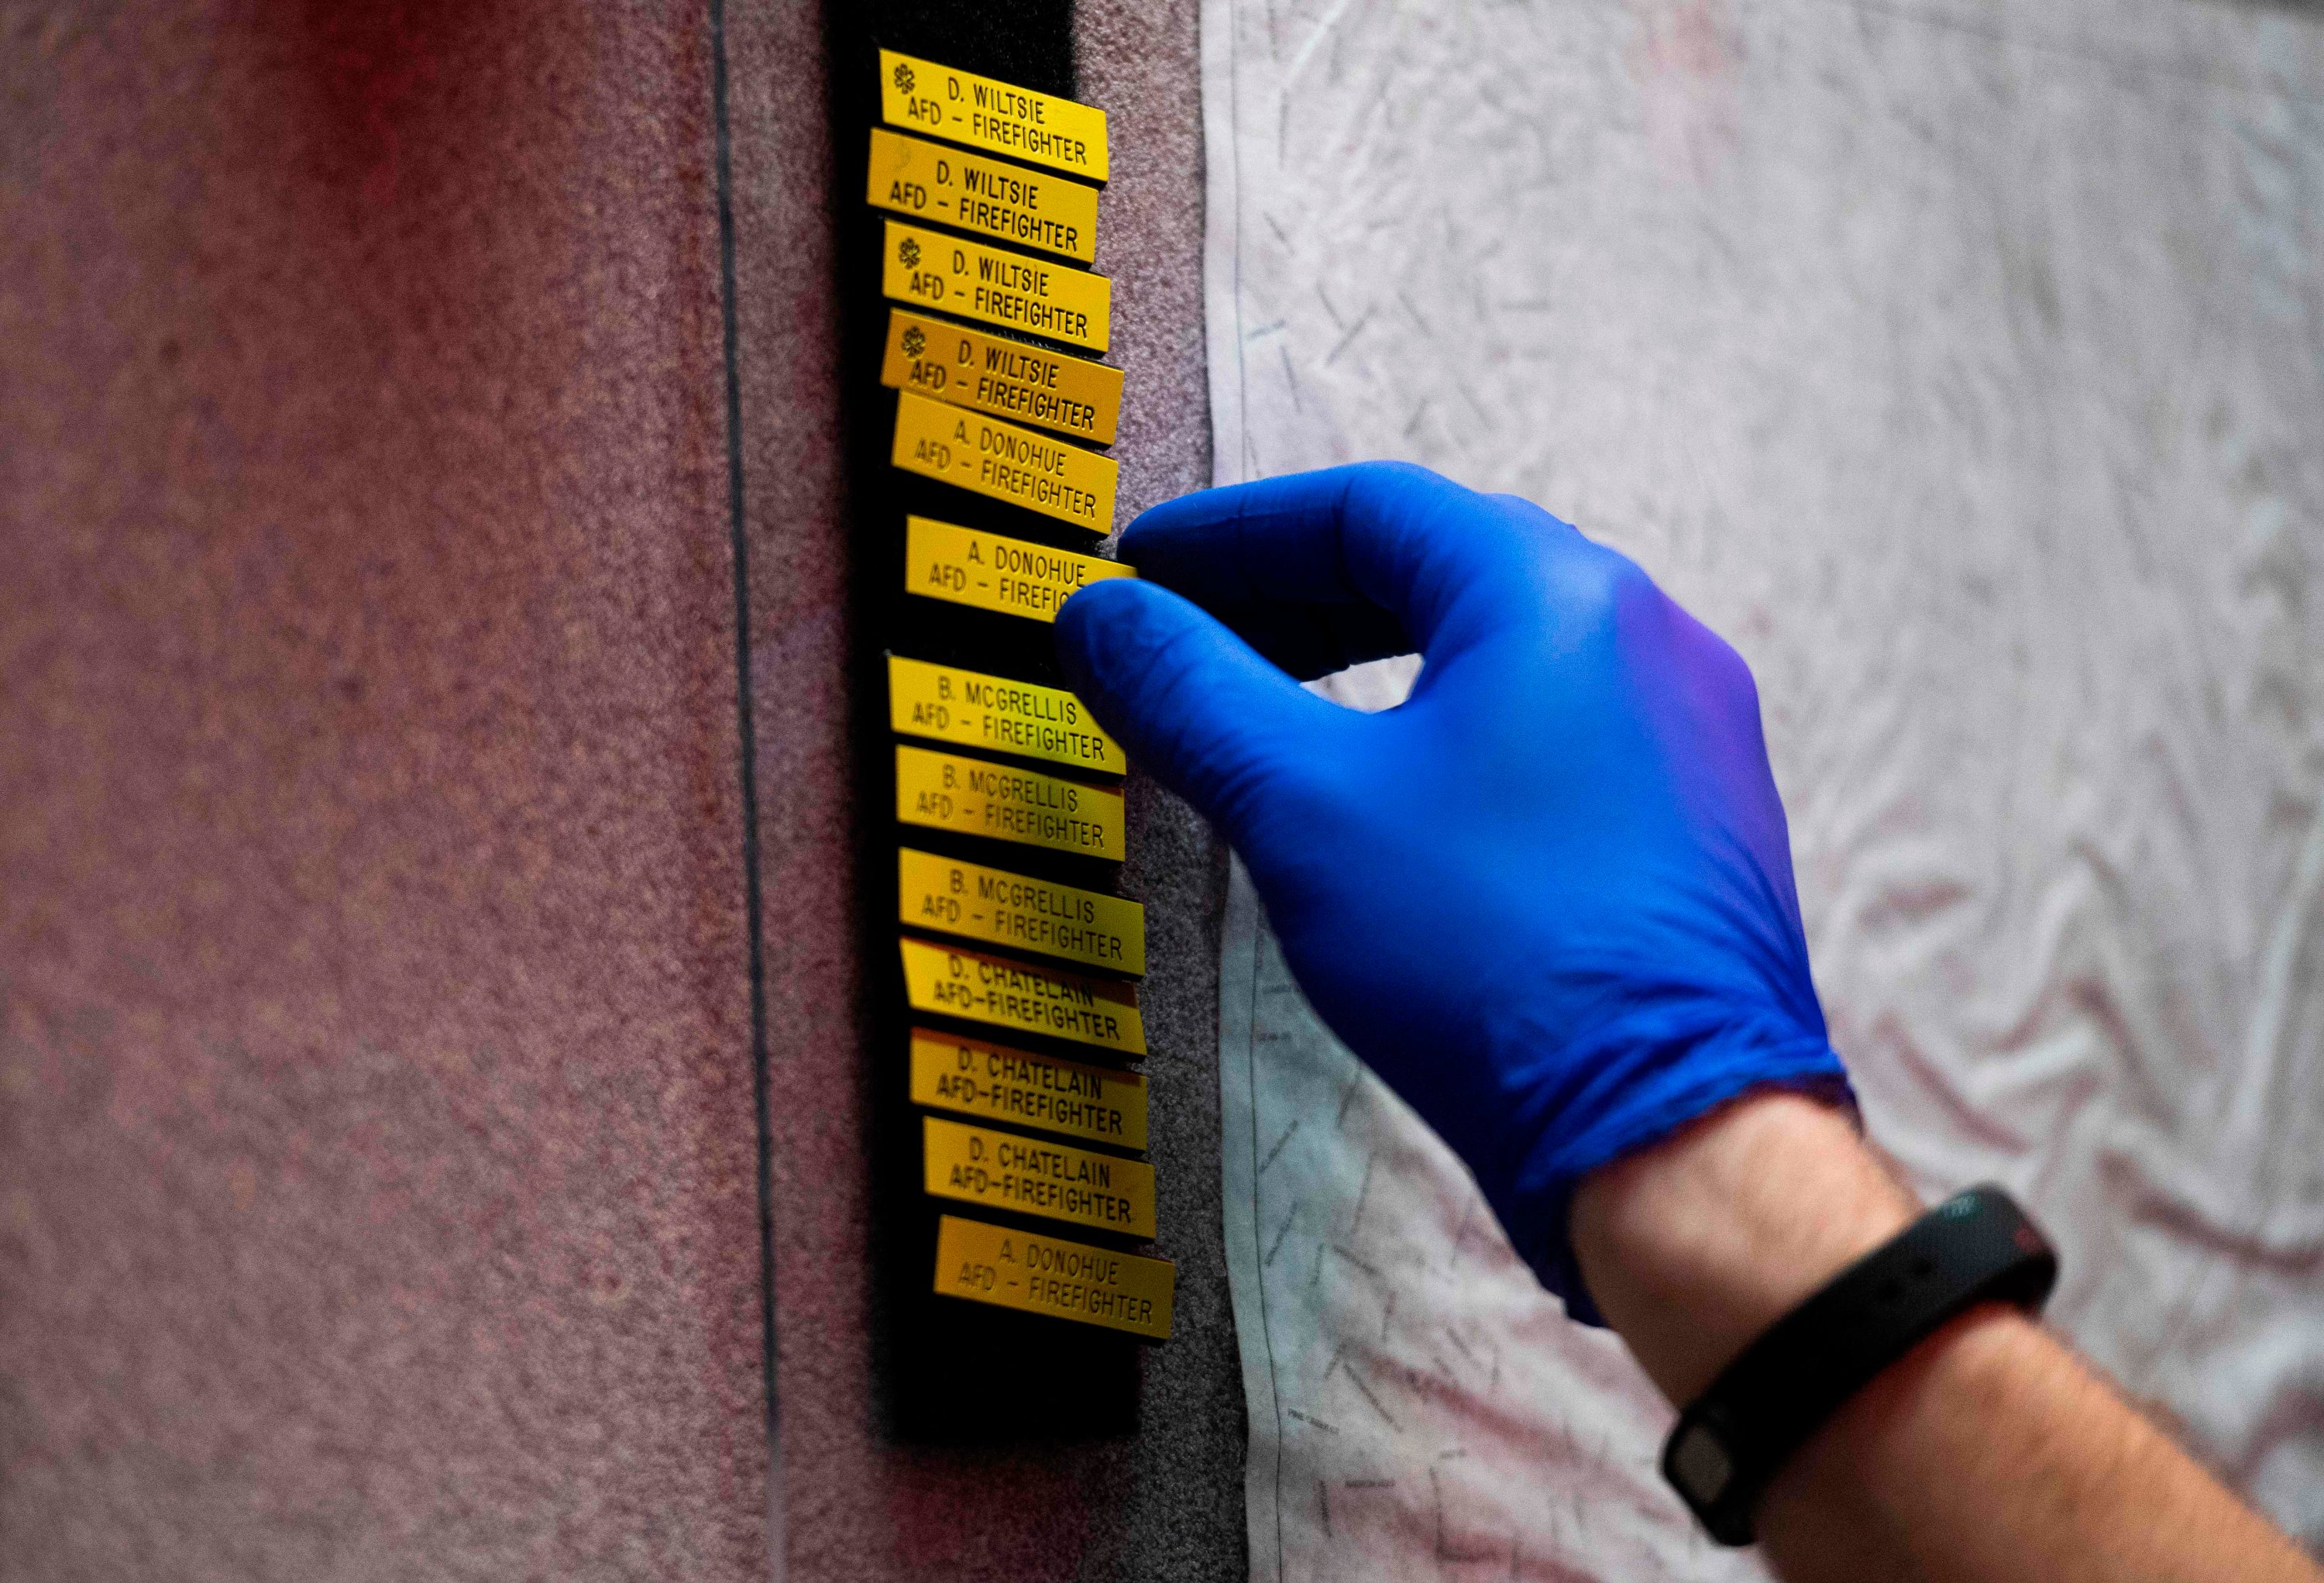 A firefighter wears surgical gloves while taking the names of firefighters off a board at Alexandria Fire Station 204 in Alexandria, Virginia, April 8, 2020. (AFP Photo)